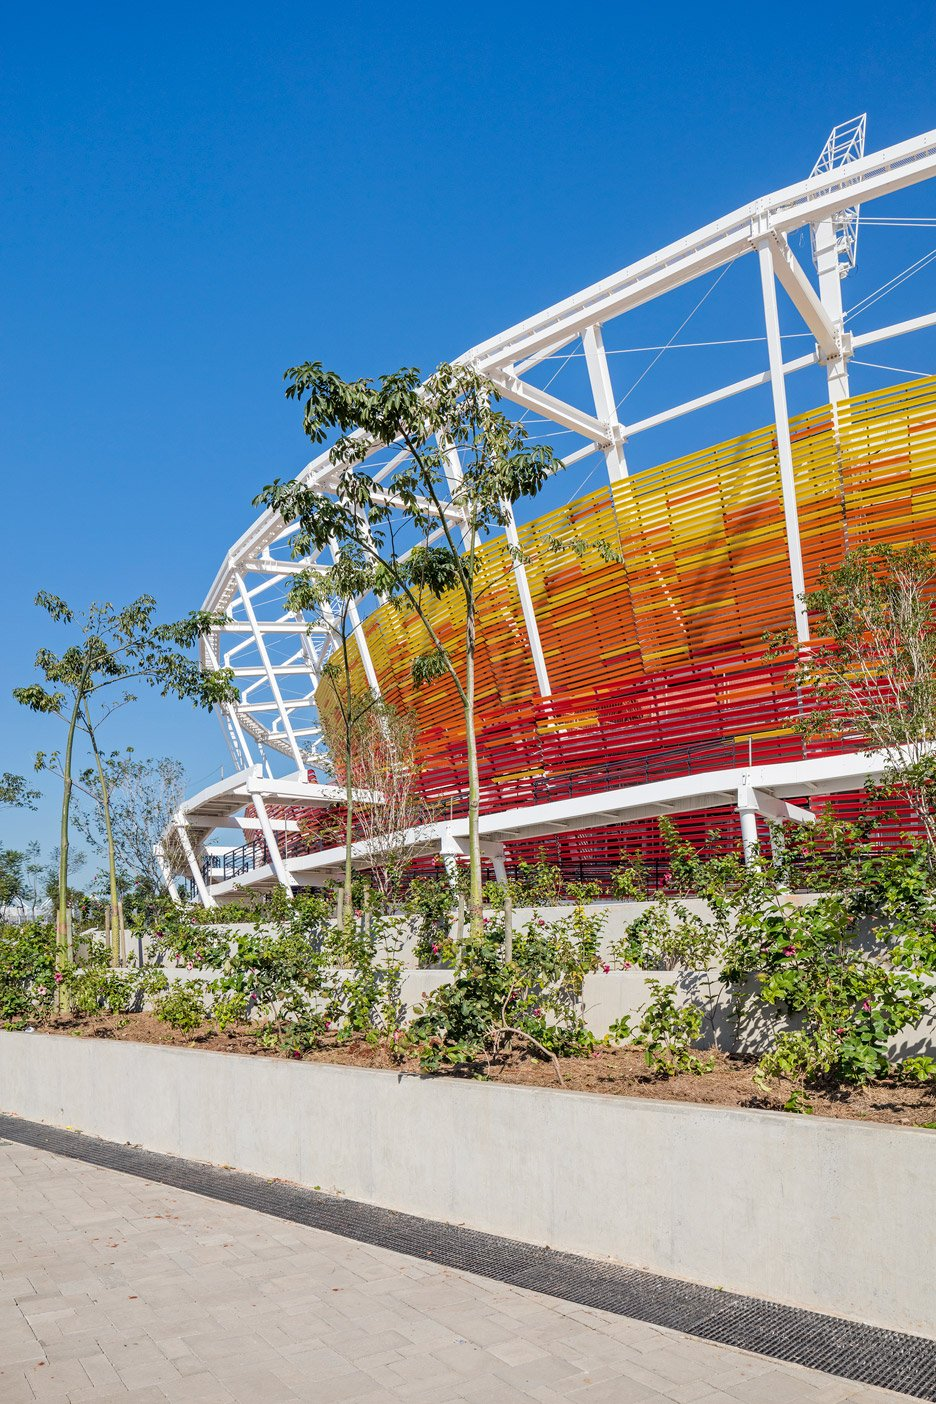 Tennis Centre Barra Olympic Park By Blac Arquitetura